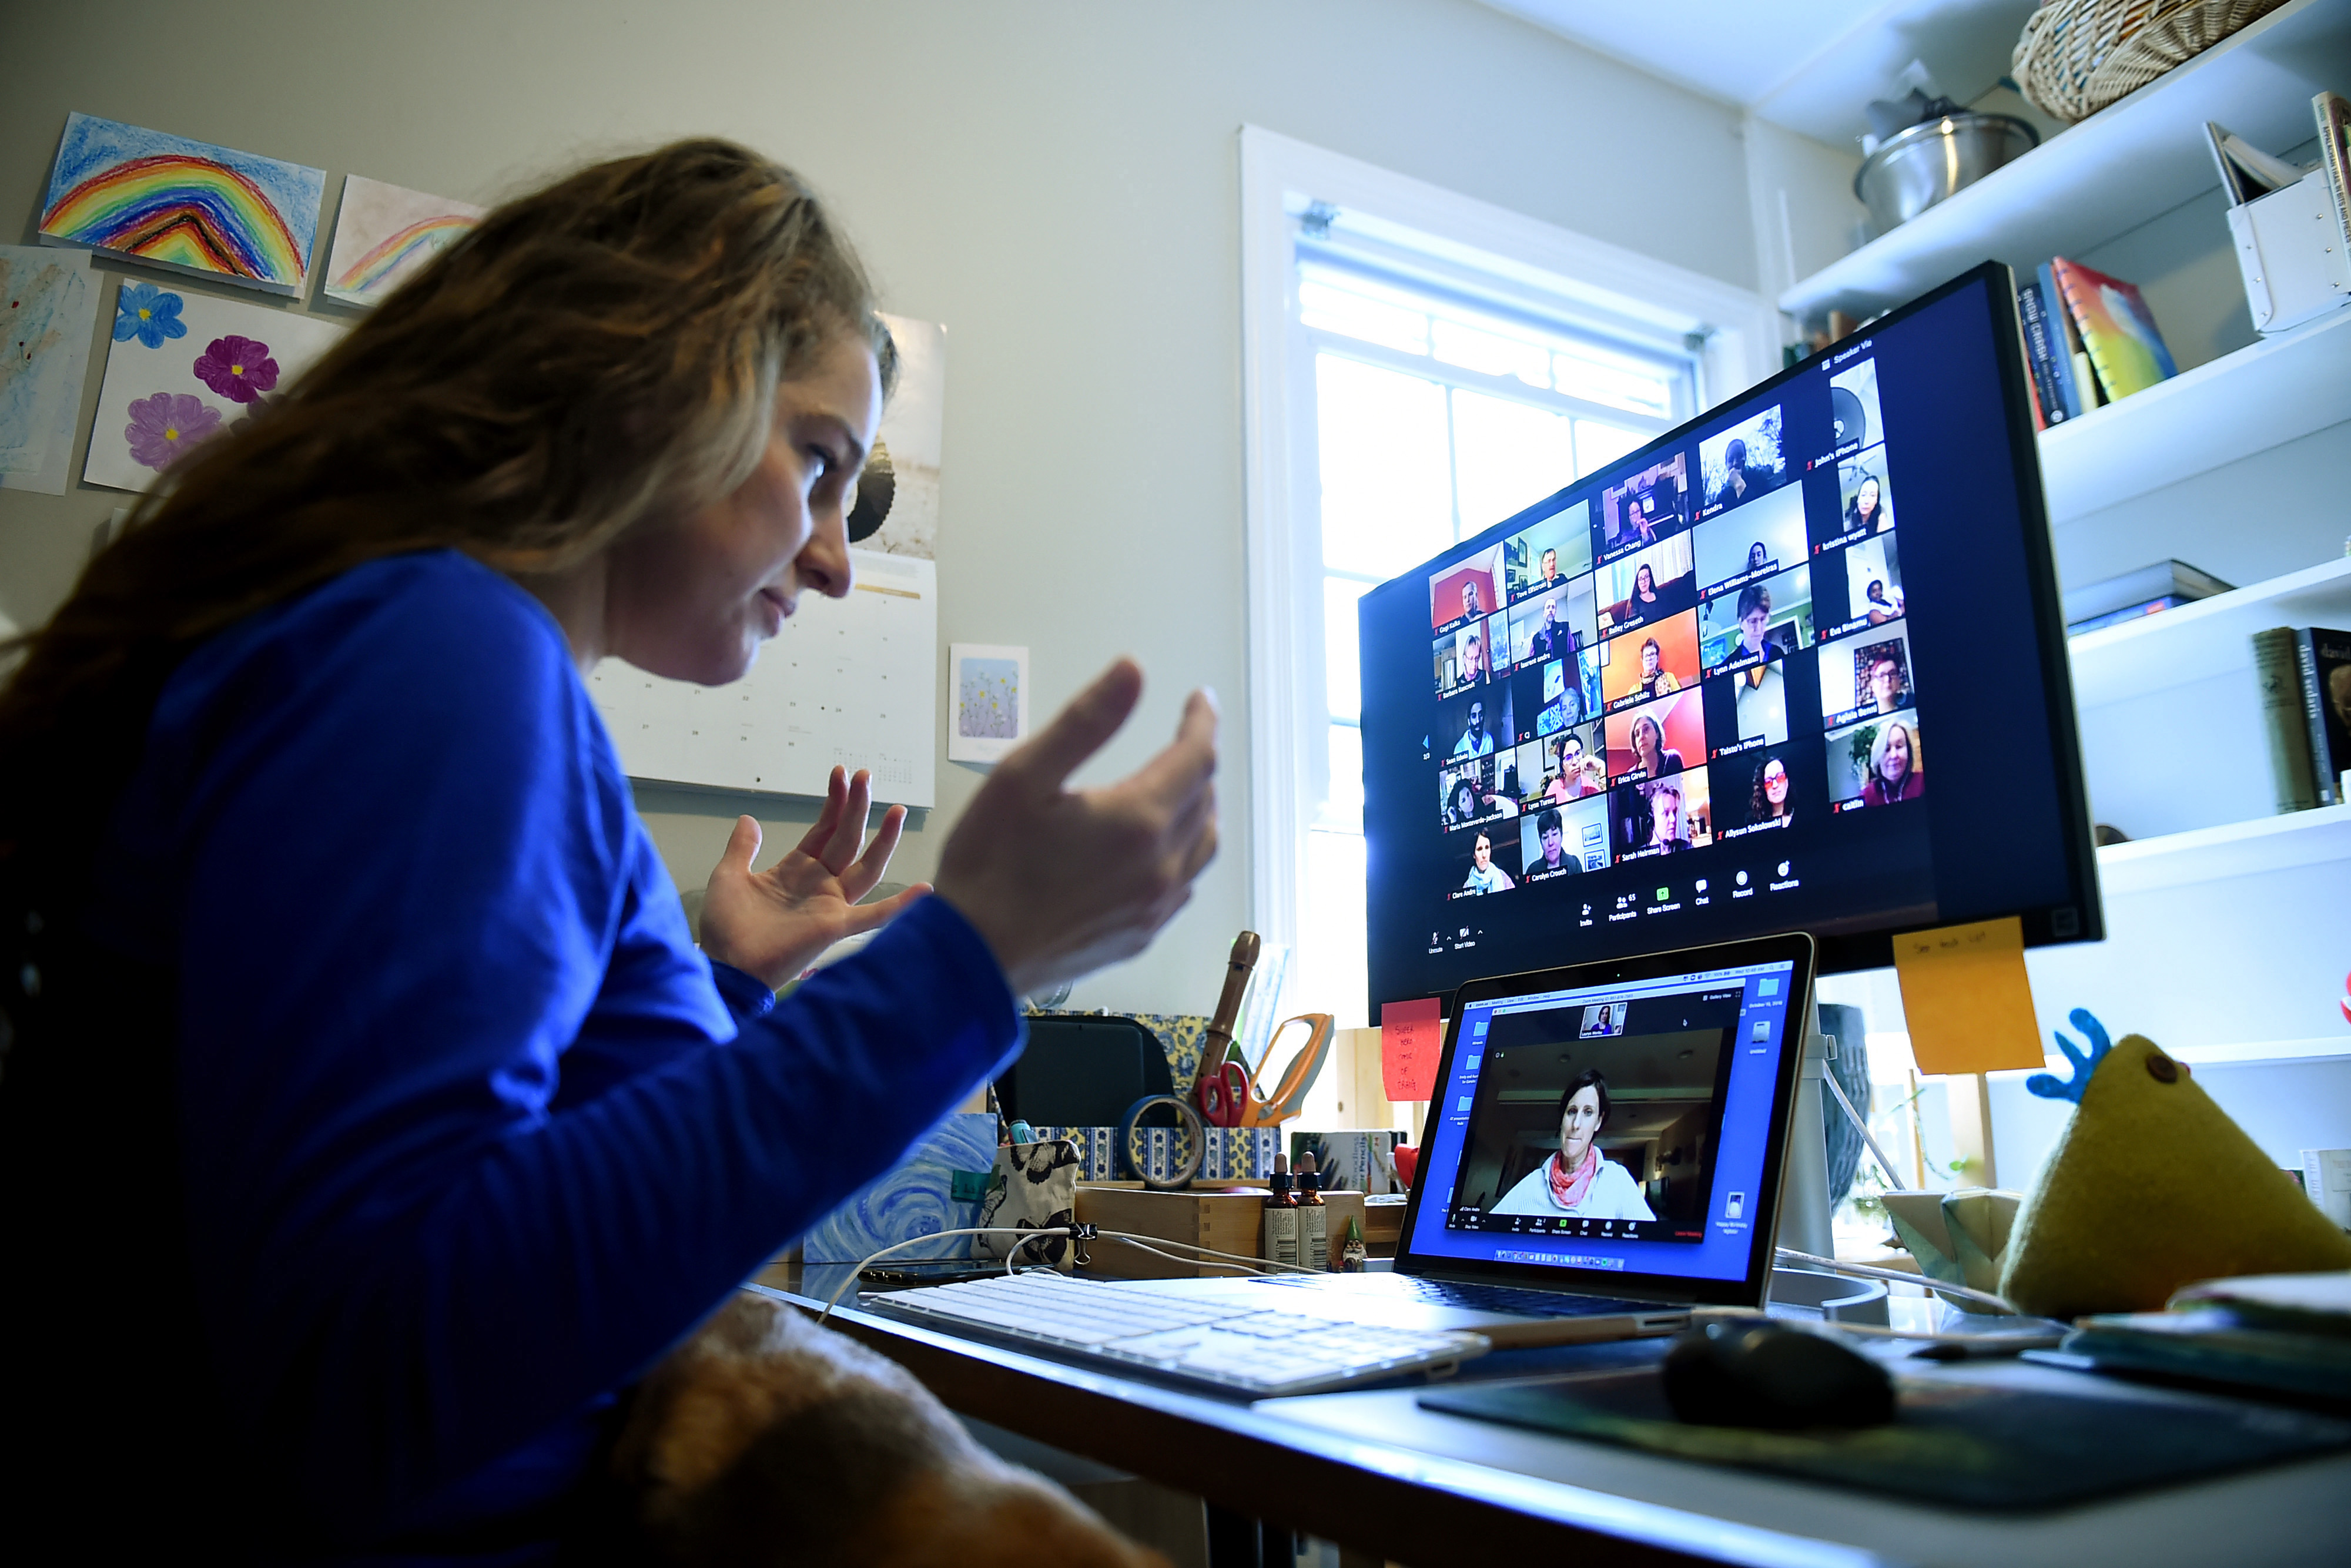 A teacher seated at a desk looks into a laptop and screen during remote learning.